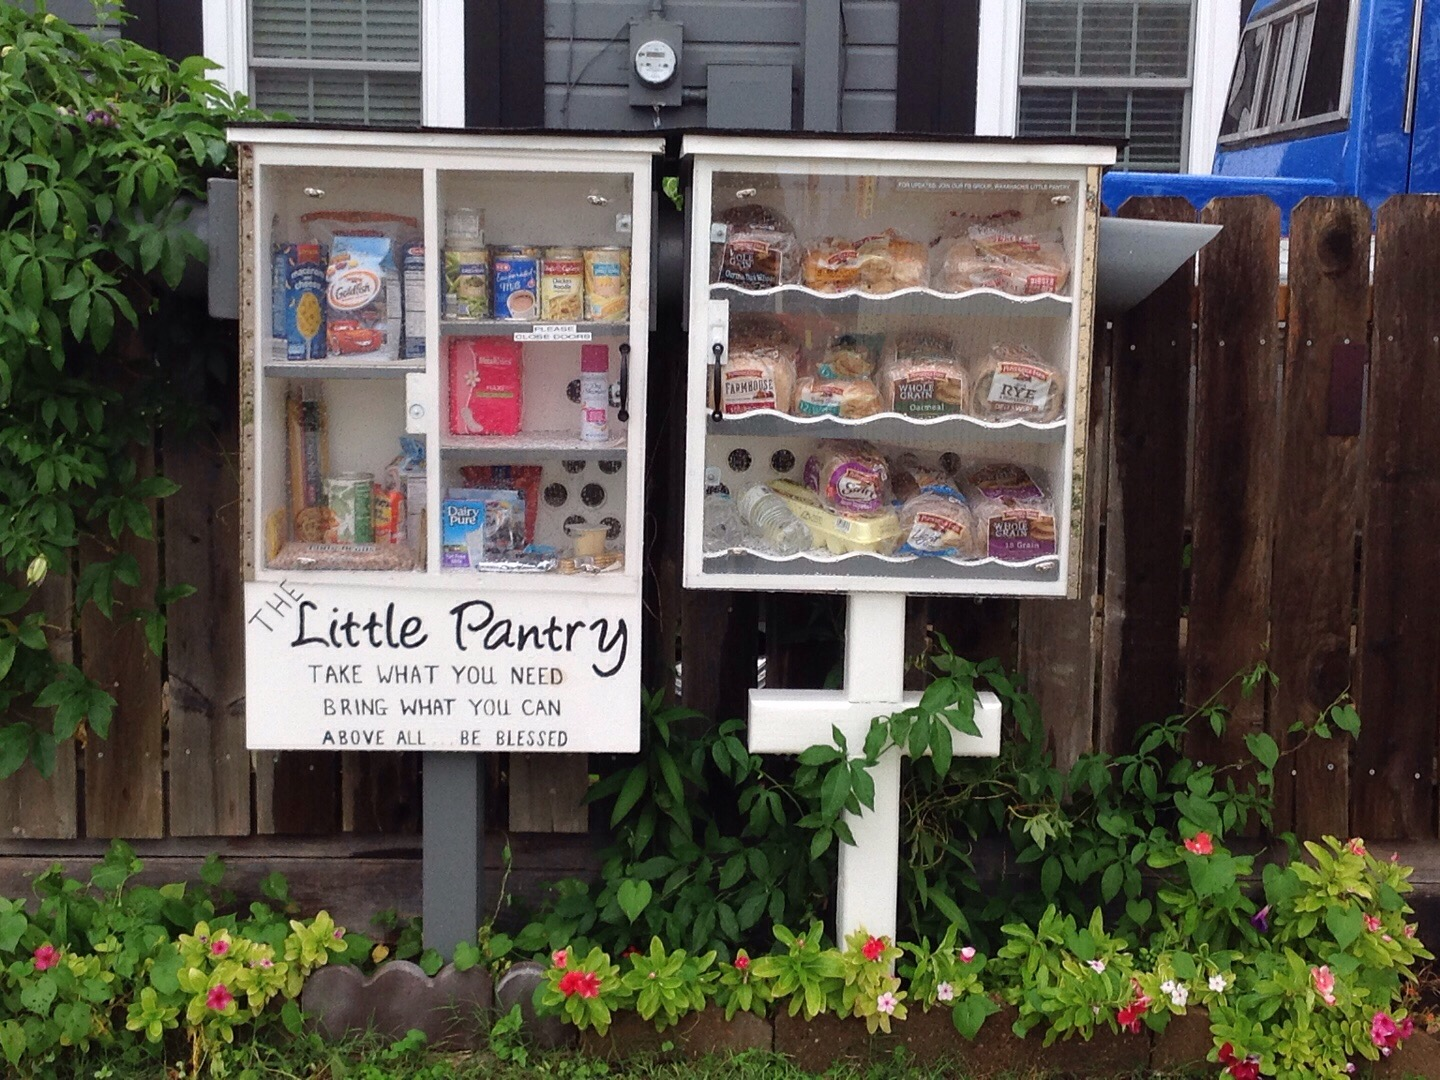 Waxahachie Little Pantry Photo 1